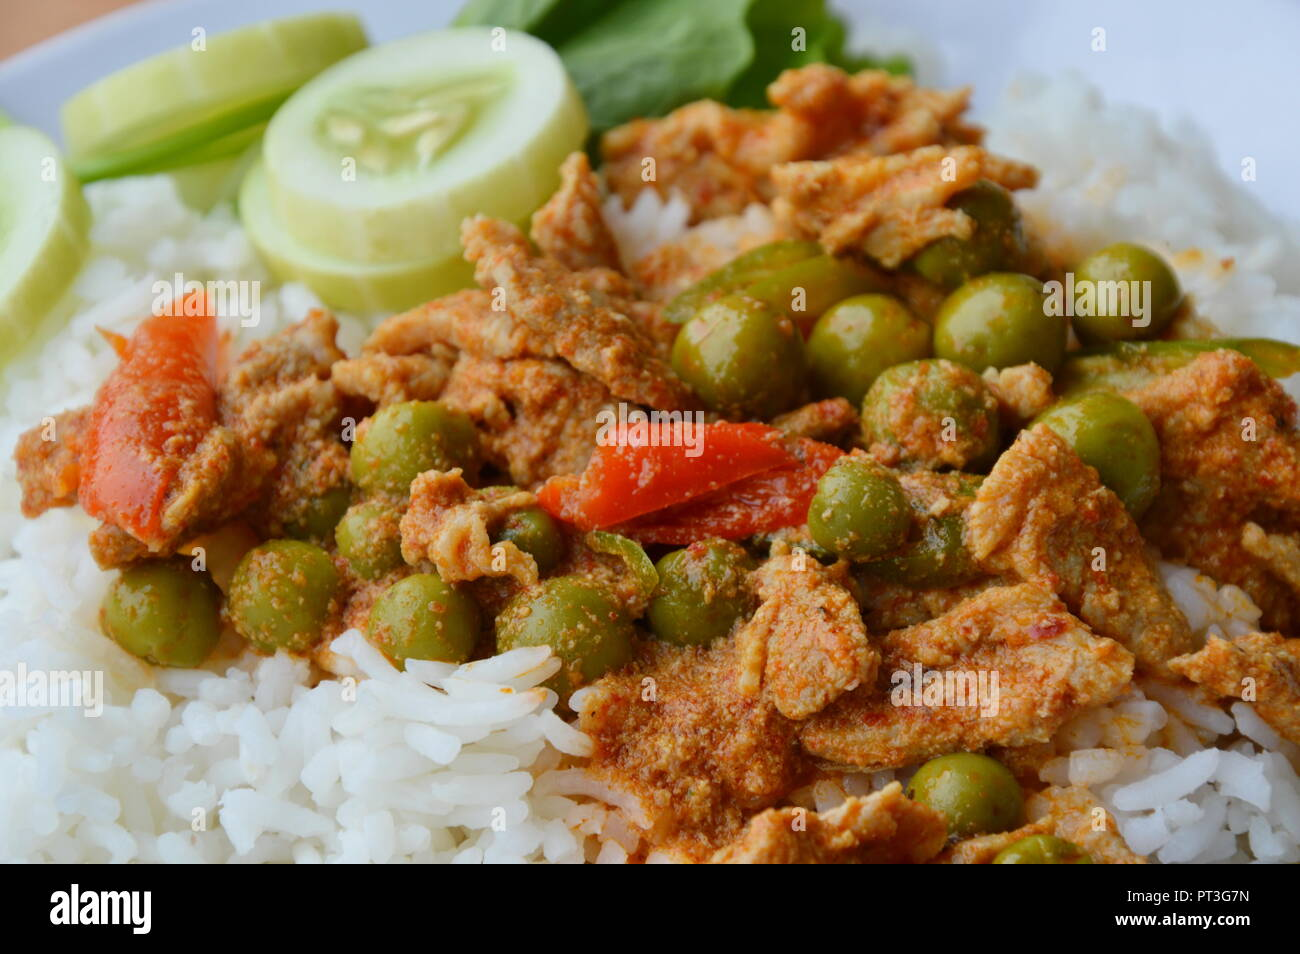 savory curry with pork on plain rice - Stock Image